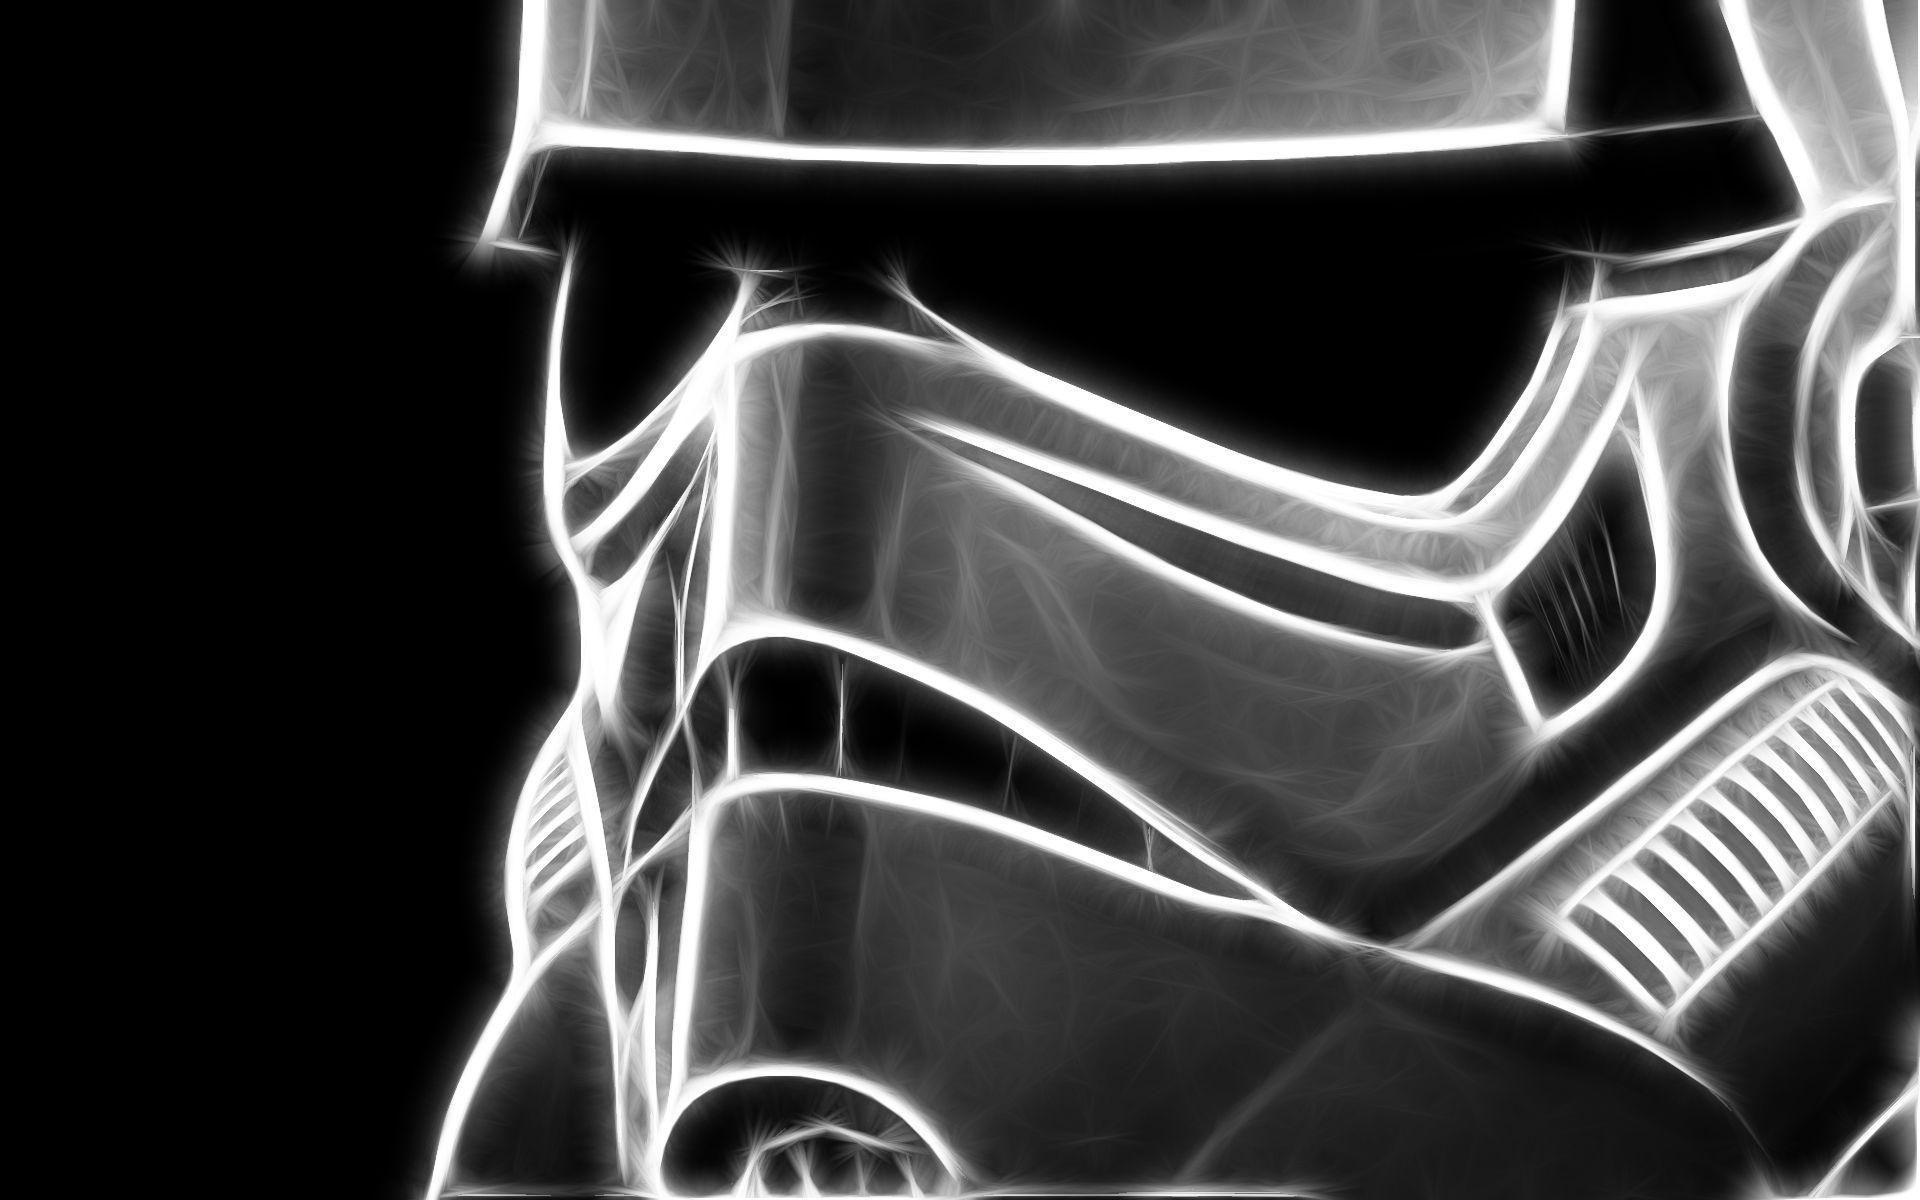 Star Wars Stormtroopers Mask Wallpapers HD / Desktop and Mobile ...